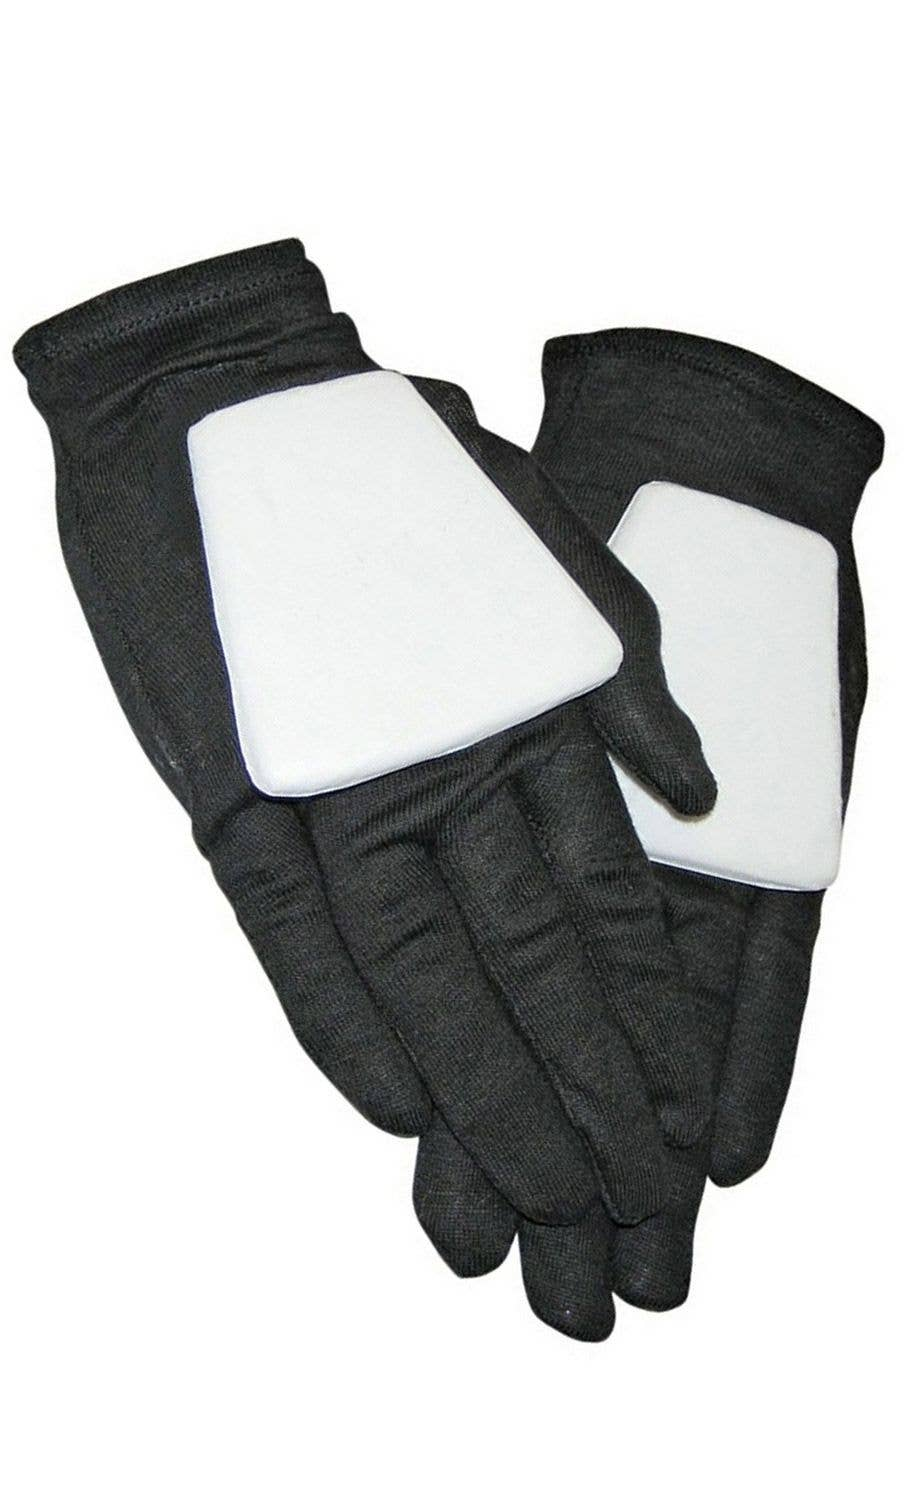 Black And White Clone Troopers Gloves Clone Troopers Costume Gloves